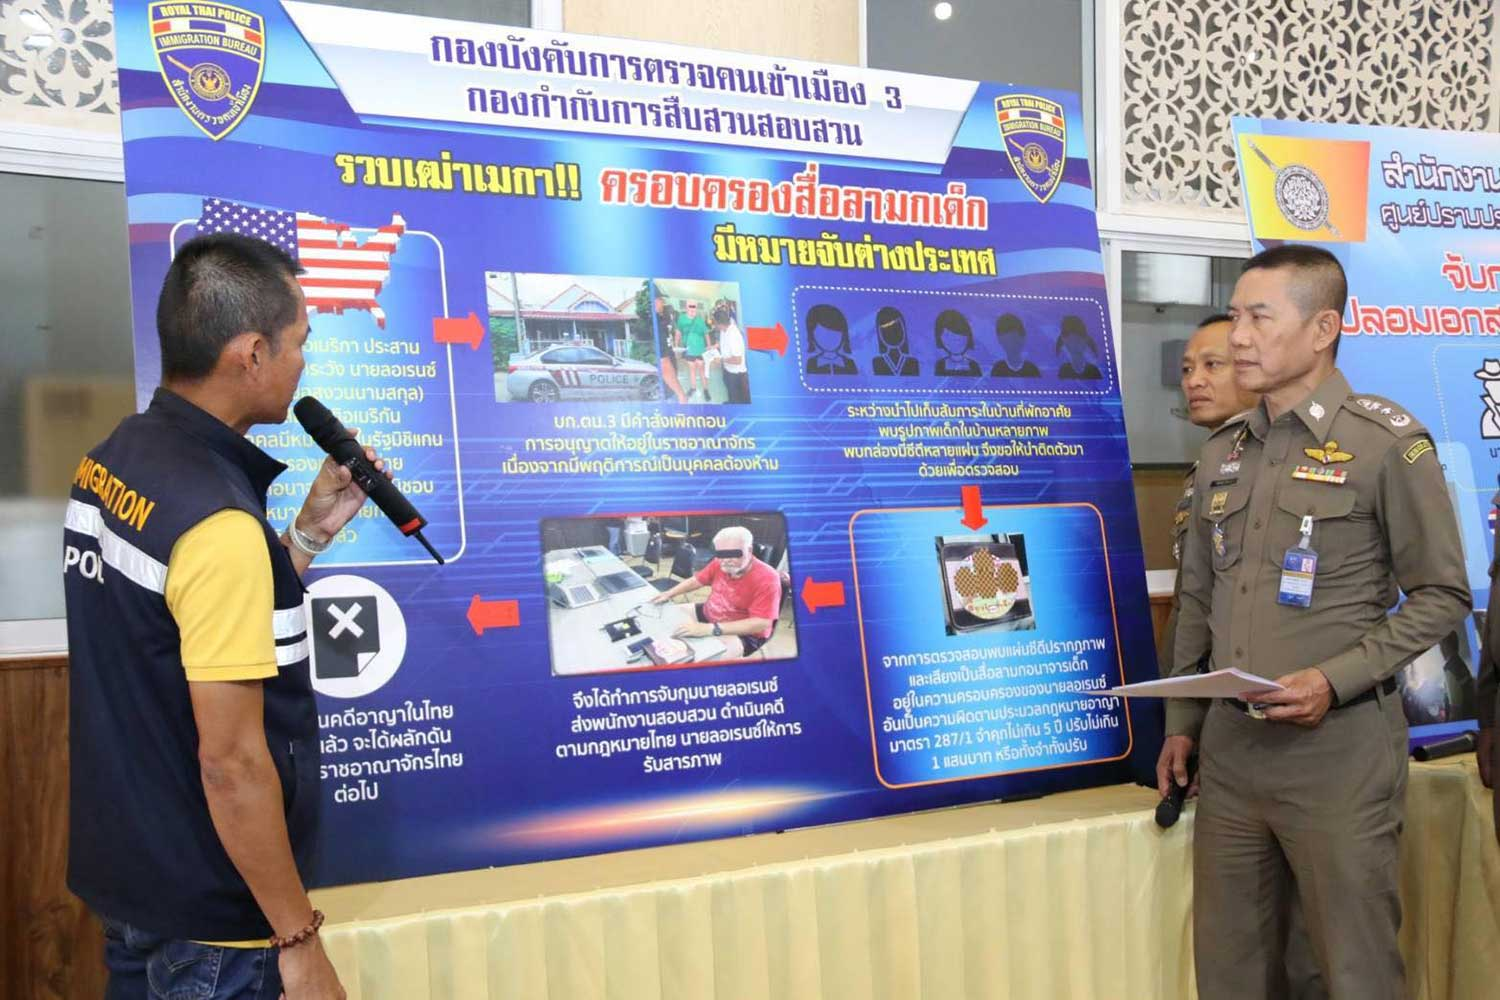 Immigration Bureau chief Pol Lt Gen Sompong Chingduan (right) looks on as an immigration officer briefs the media on the arrest of an American man, 77, wanted on pornography charges in the state of Michigan. The man was arrested at a house in Pathum Thani. (Photo taken from @SeuKlangDaily Facebook page)